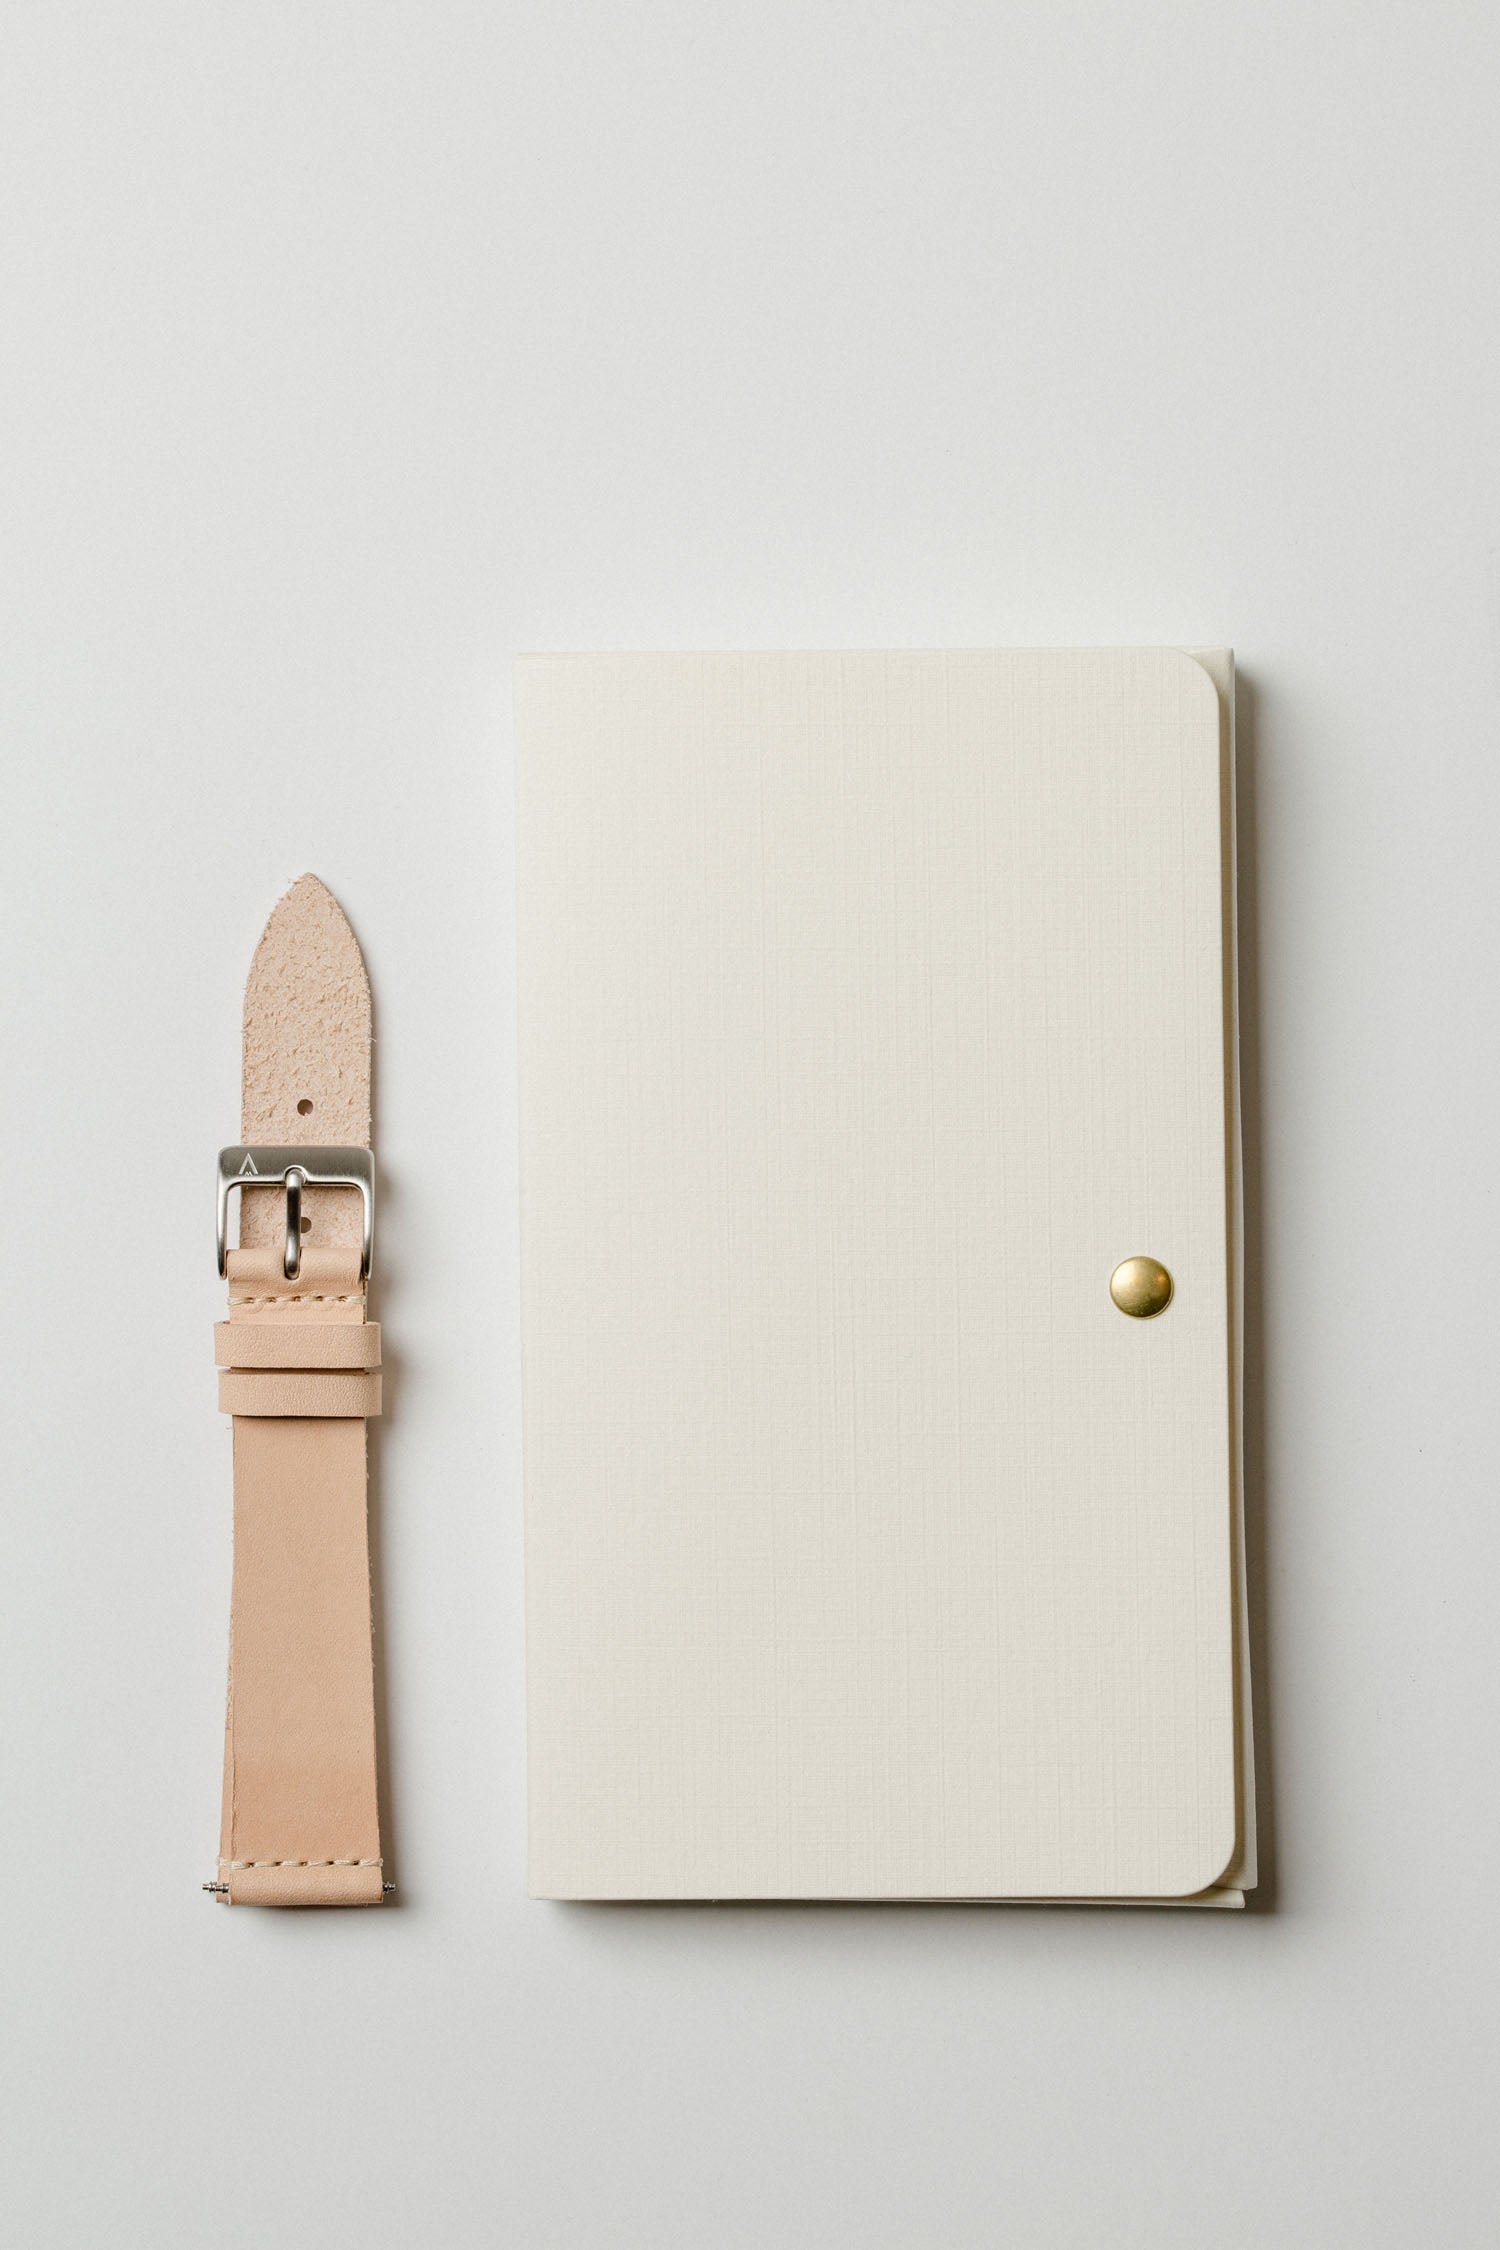 VOID Watches's off-white strap packaging featuring a Swedish vegetable tanned leather strap.